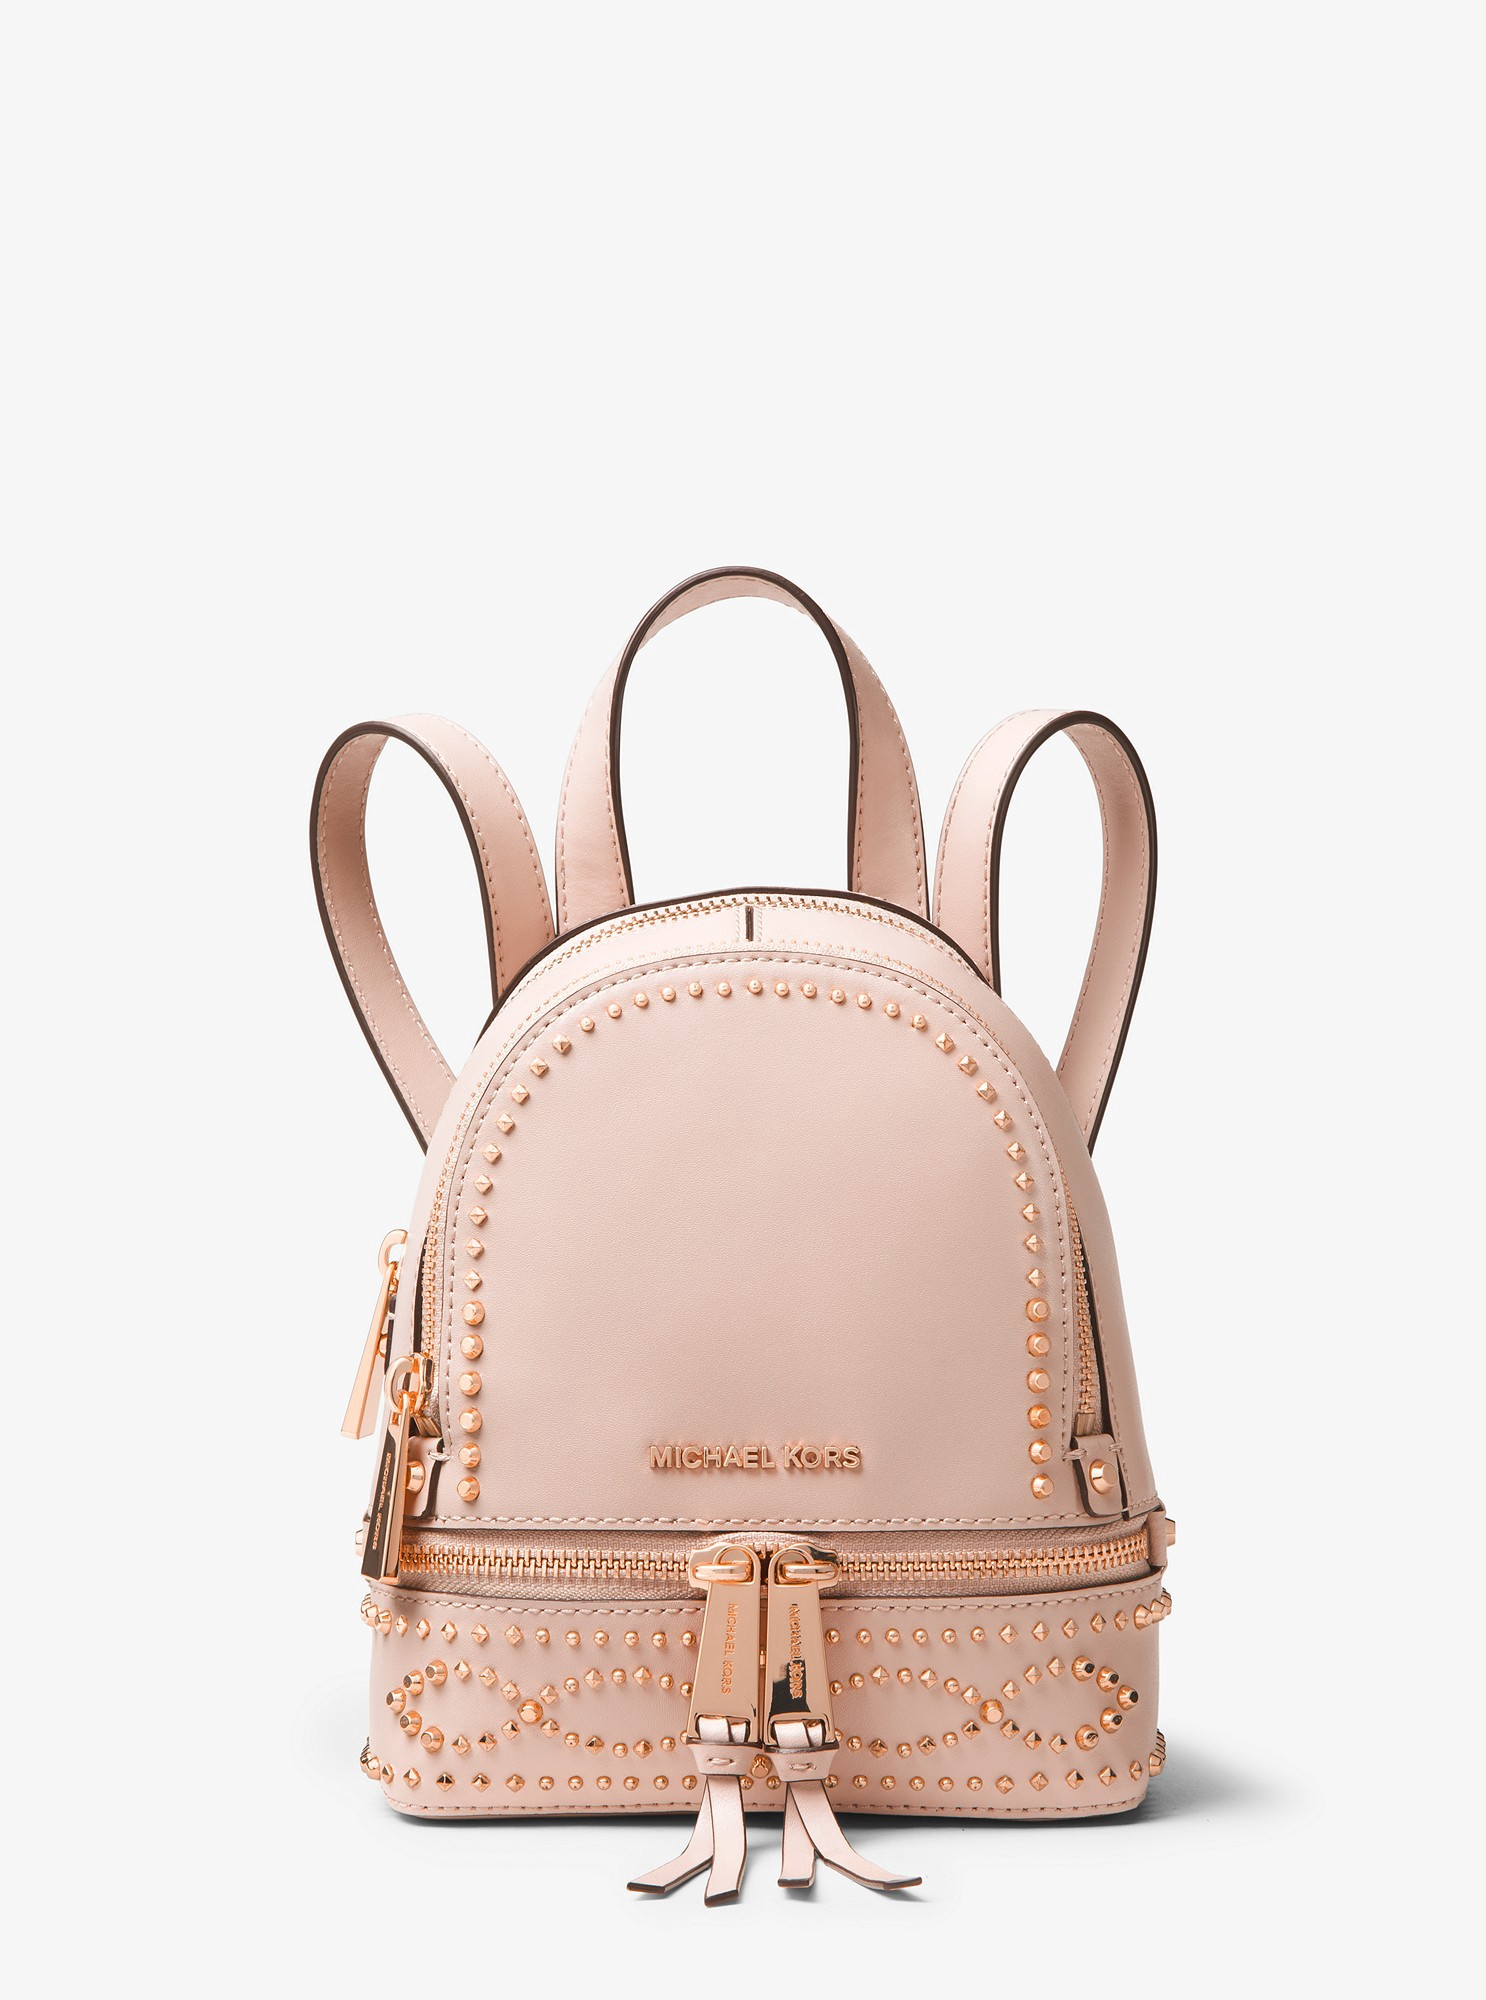 7762cba01d Michael Kors Rhea Mini Studded Leather Backpack - Soft Pink ...